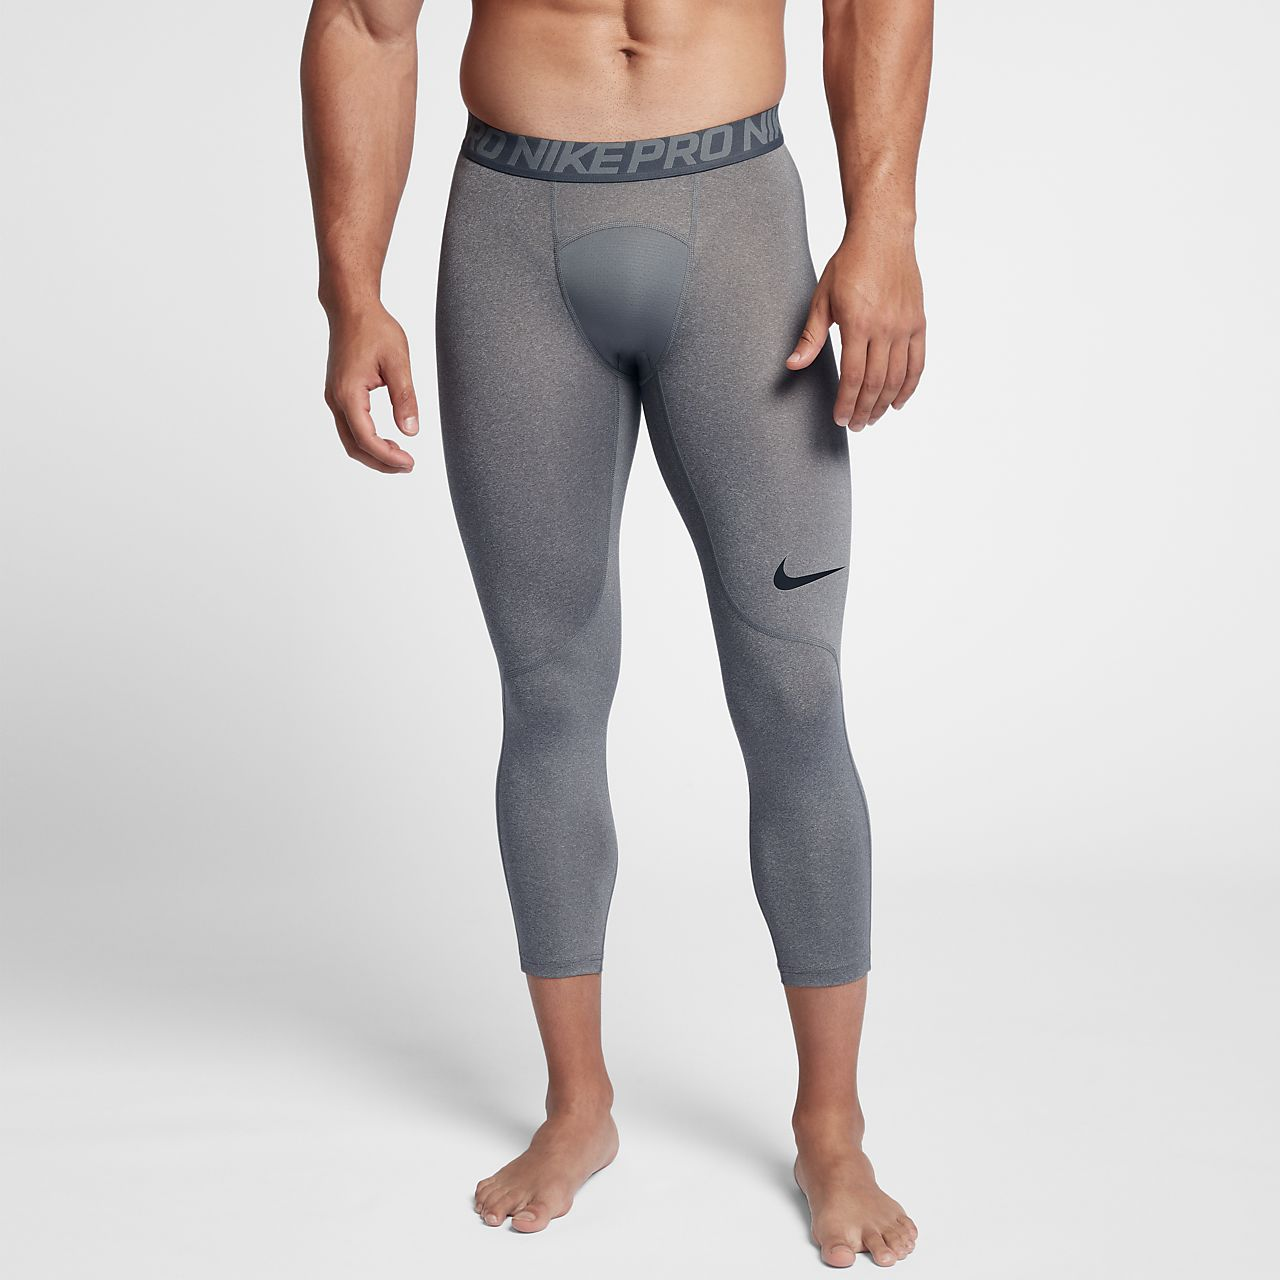 d6e1cdbdf7fe3 Nike Pro Men's 3/4 Training Tights. Nike.com GB